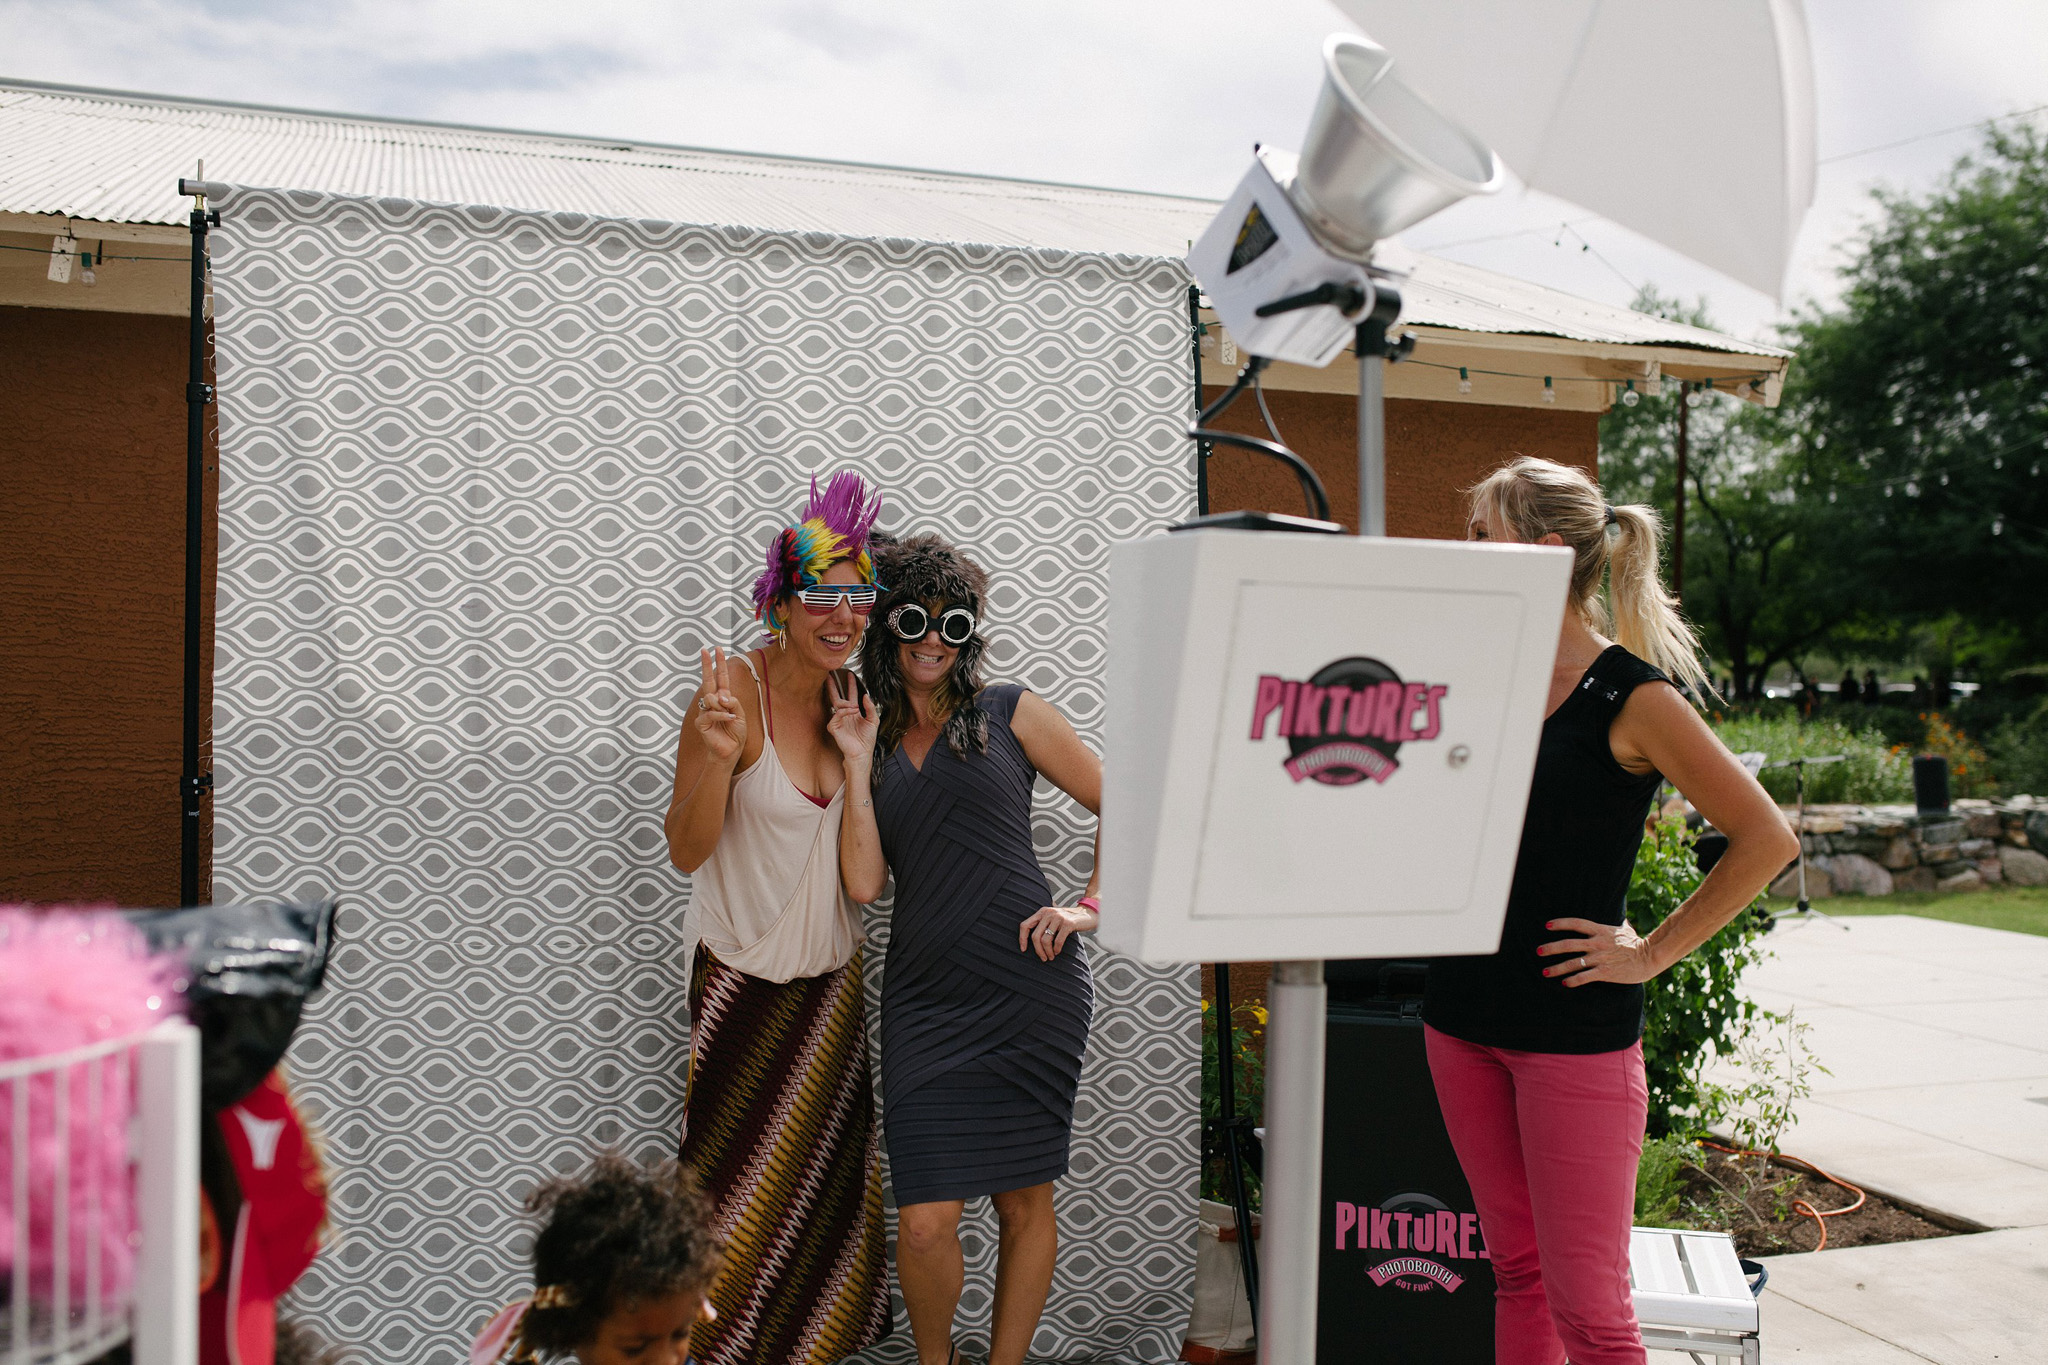 photo booth morning wedding at Farm at South Mountain